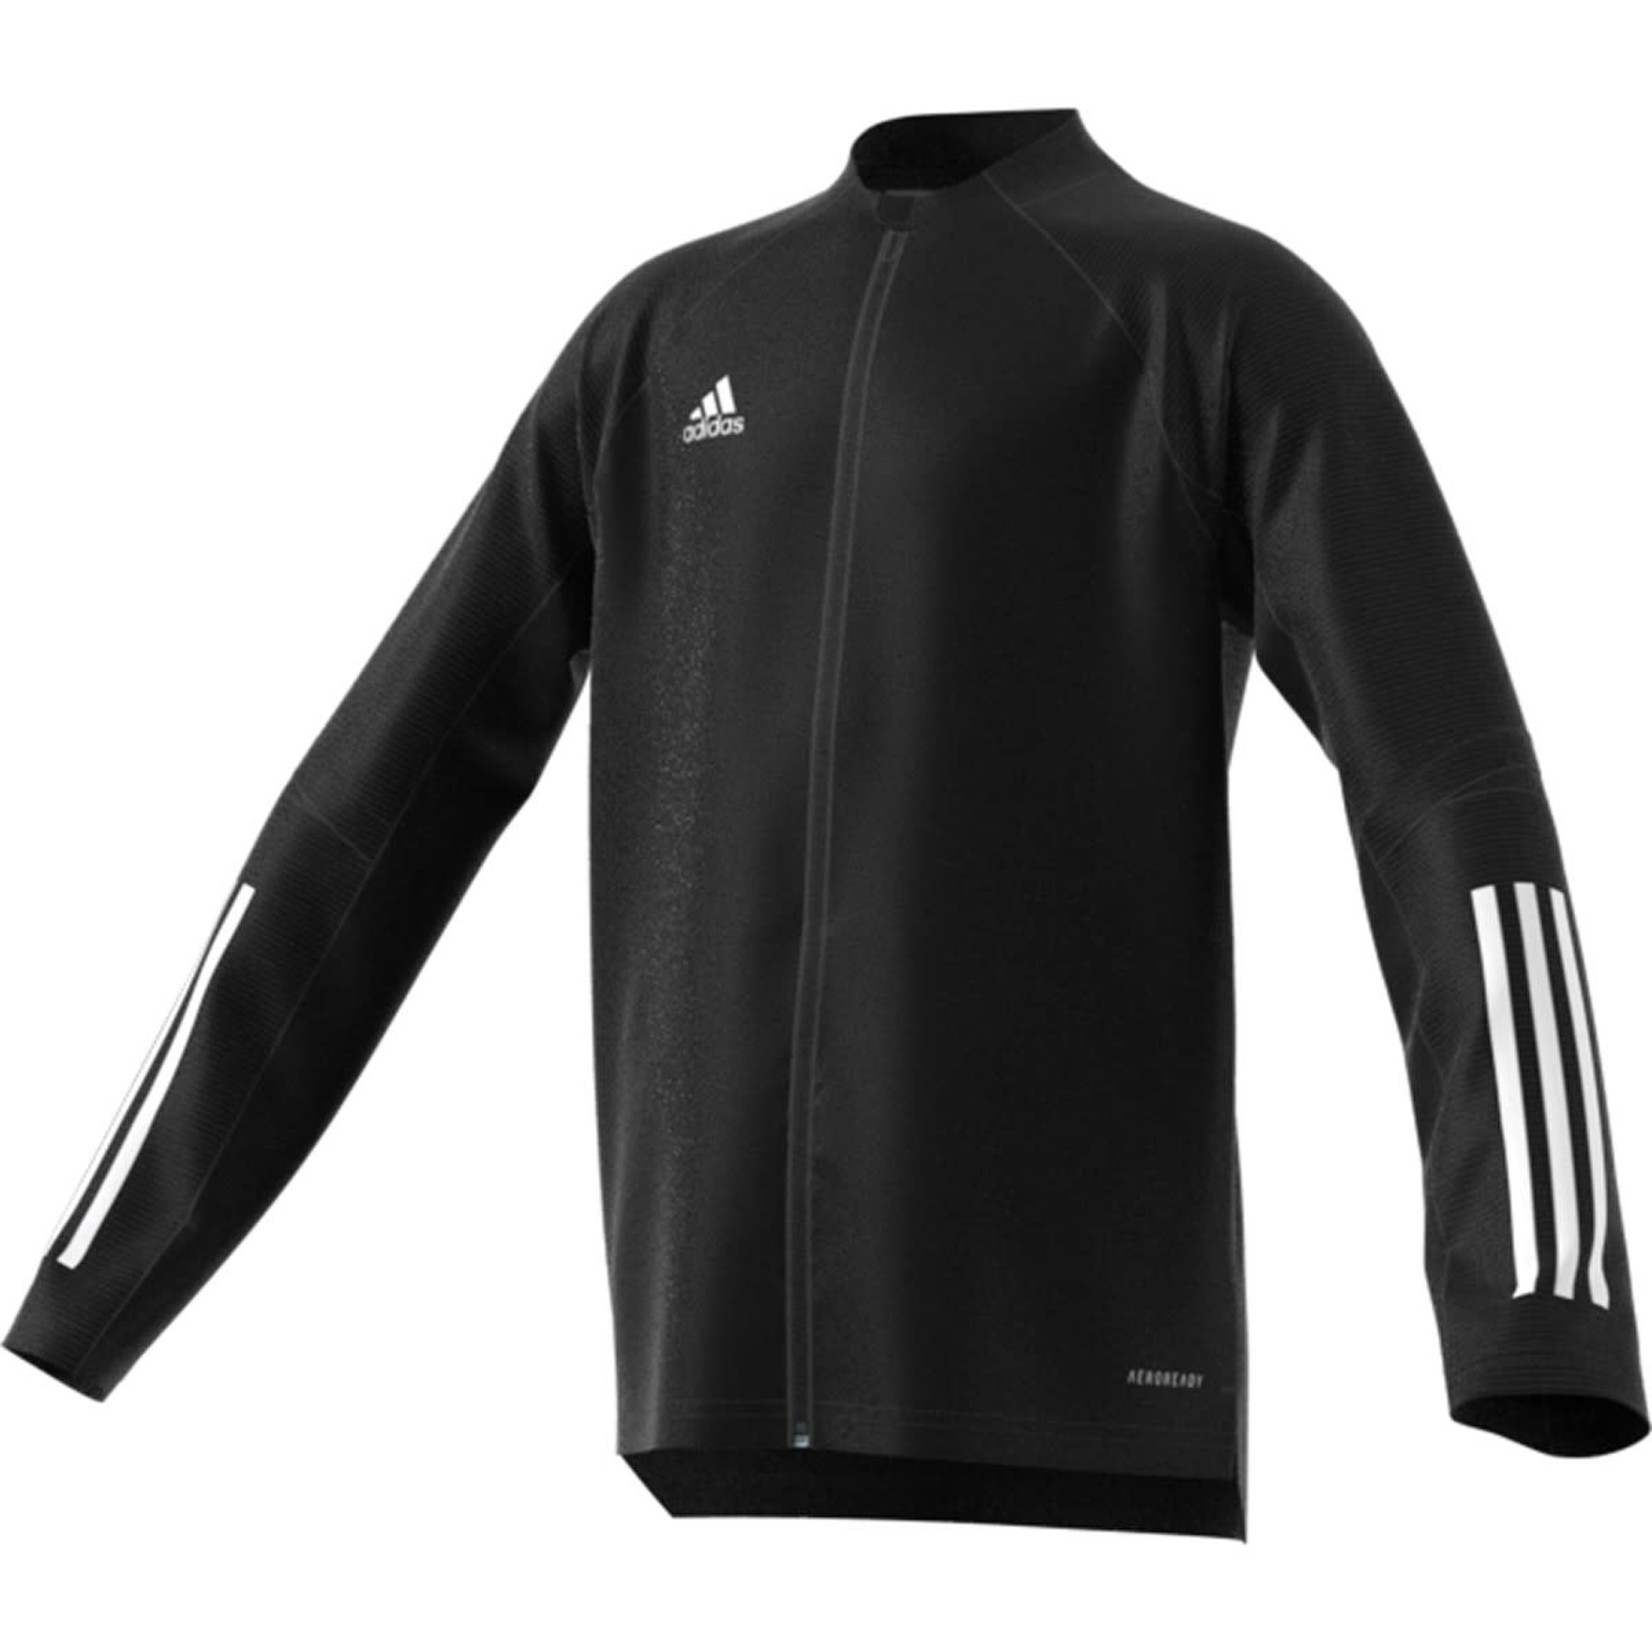 ADIDAS CONDIVO 20 TRAINING JACKET YOUTH